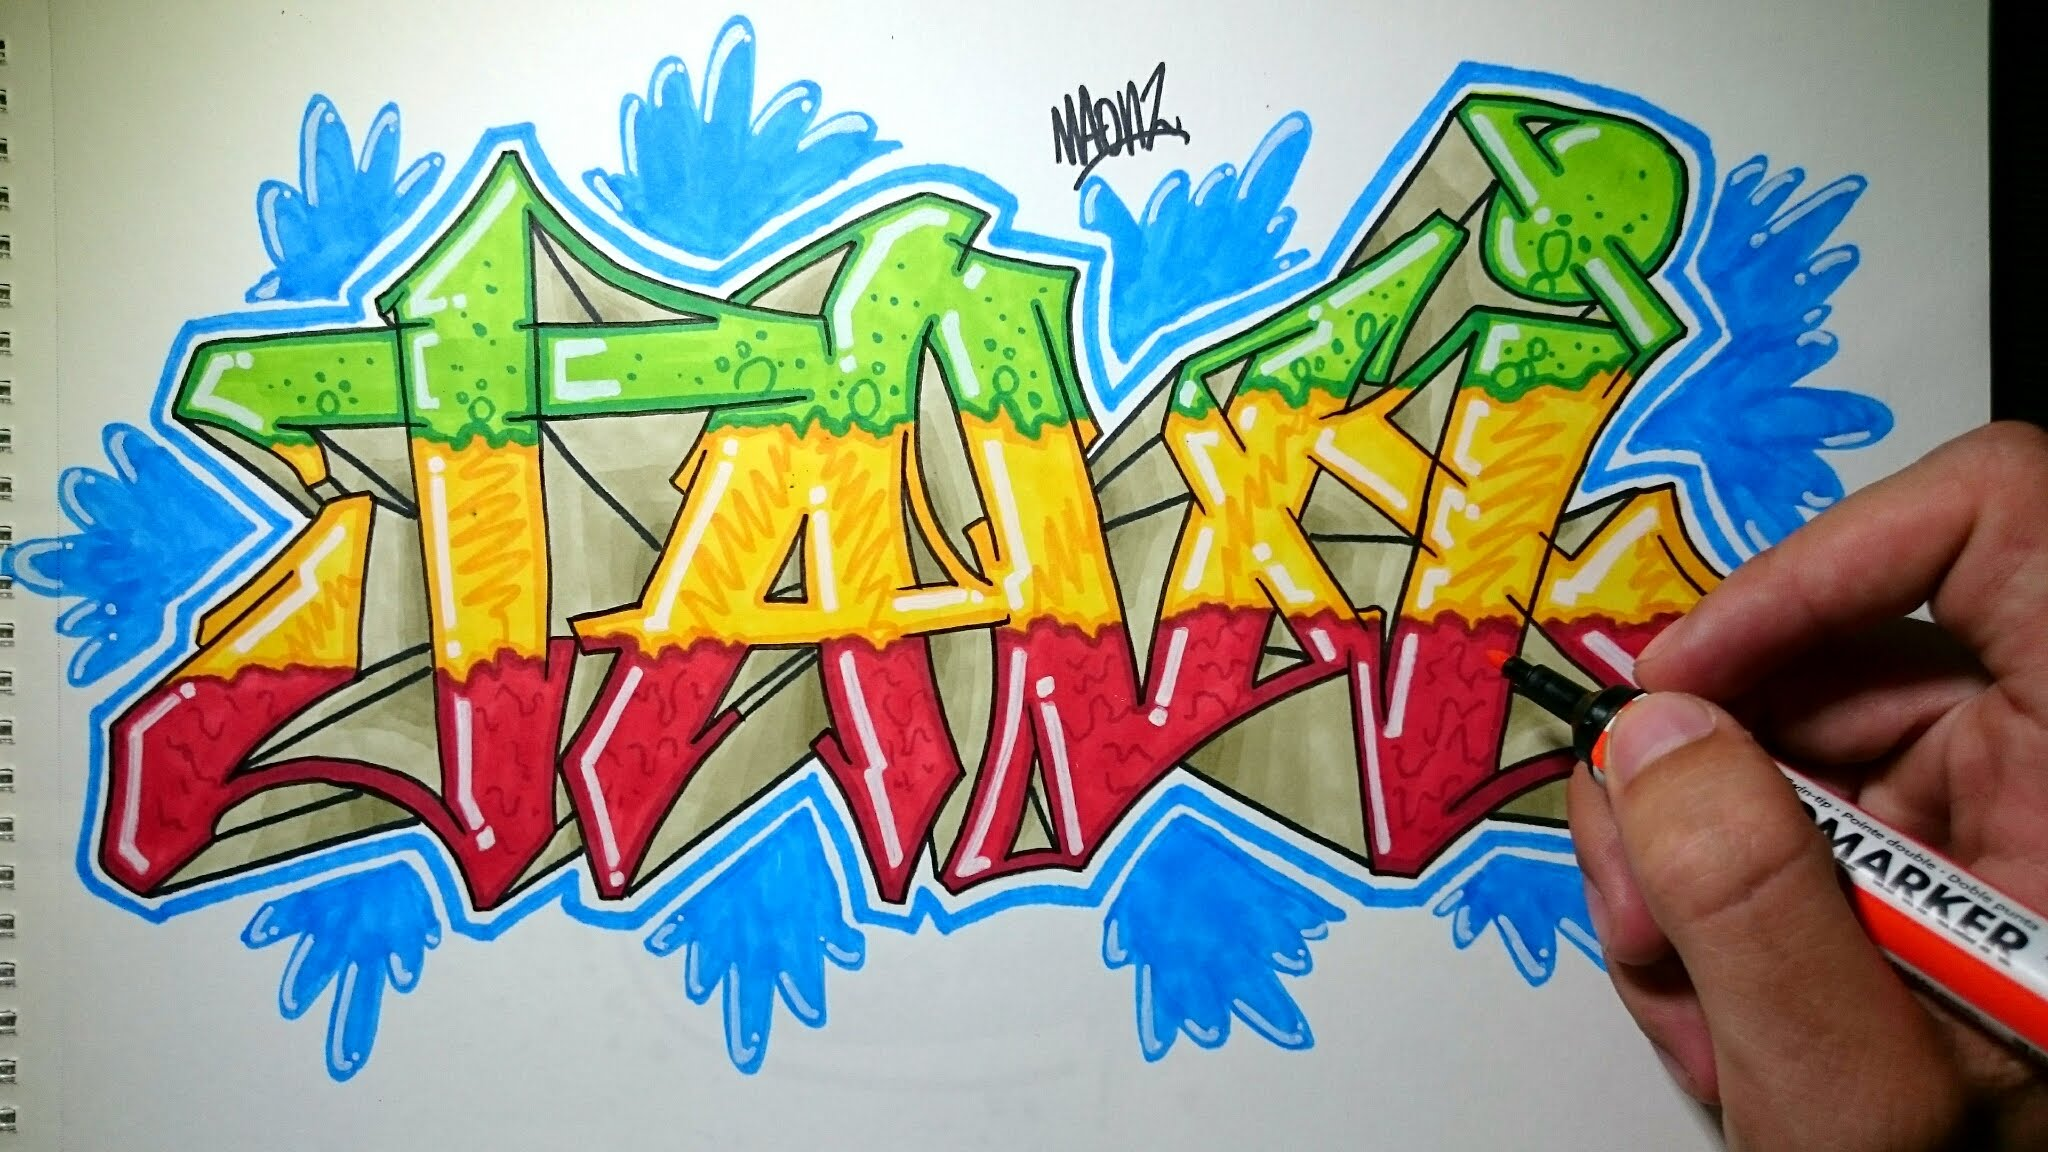 Draw graffiti on paper